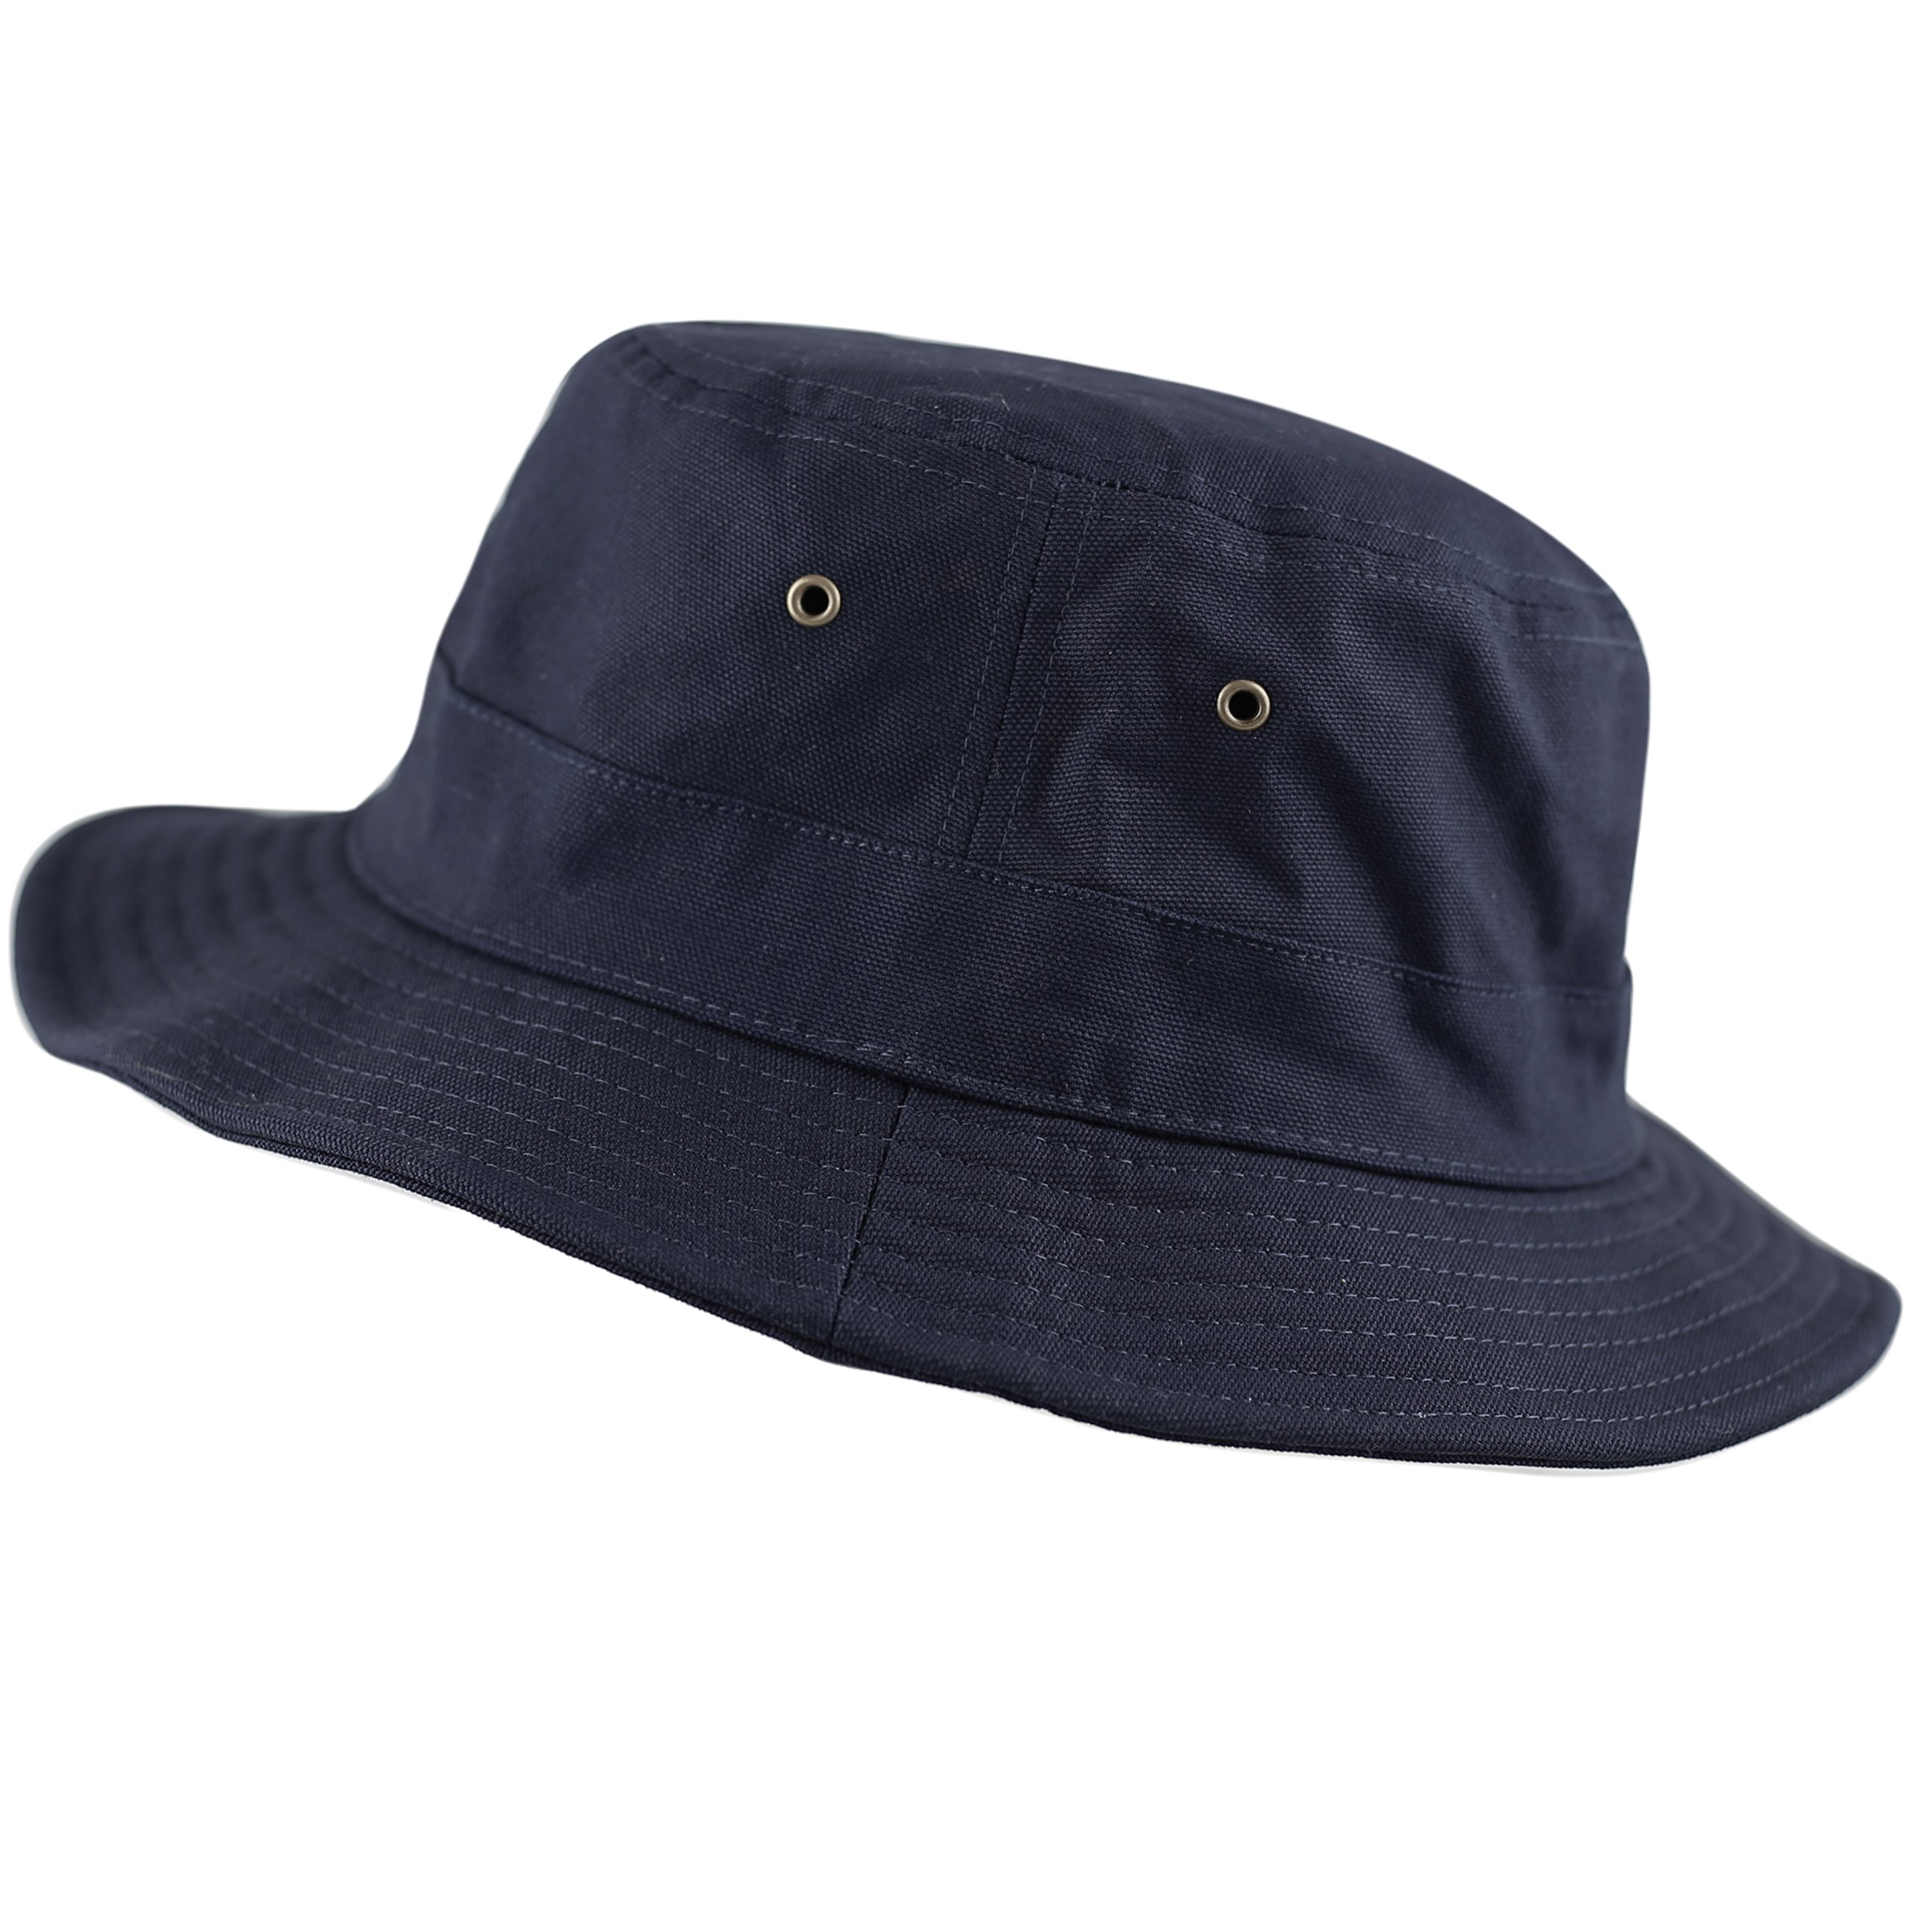 THE HAT DEPOT 100% Cotton Canvas Packable Summer Travel Bucket Hat (L/XL, Navy)